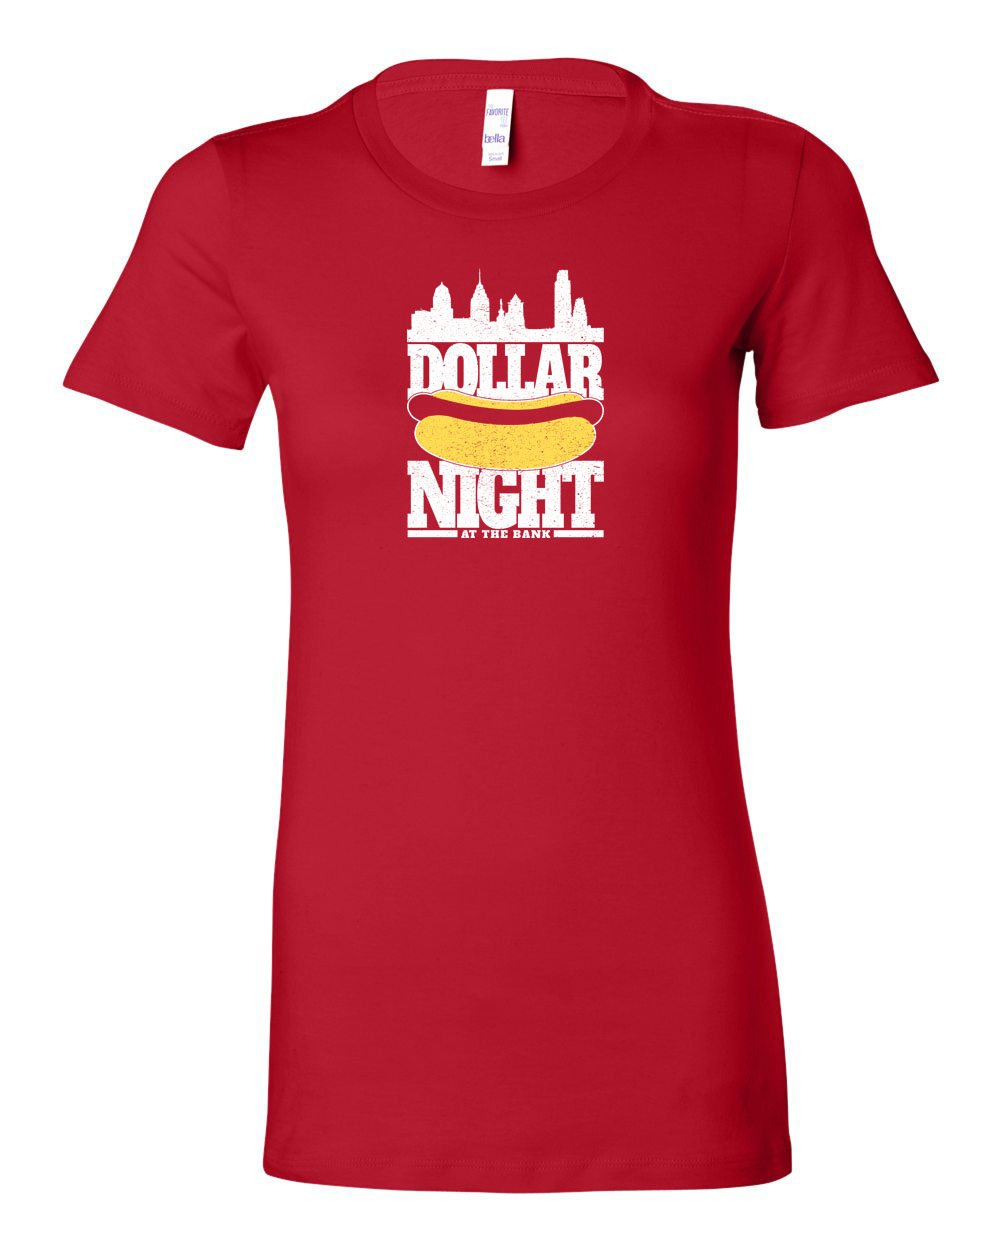 Dollar Dog Night LADIES Junior-Fit T-Shirt